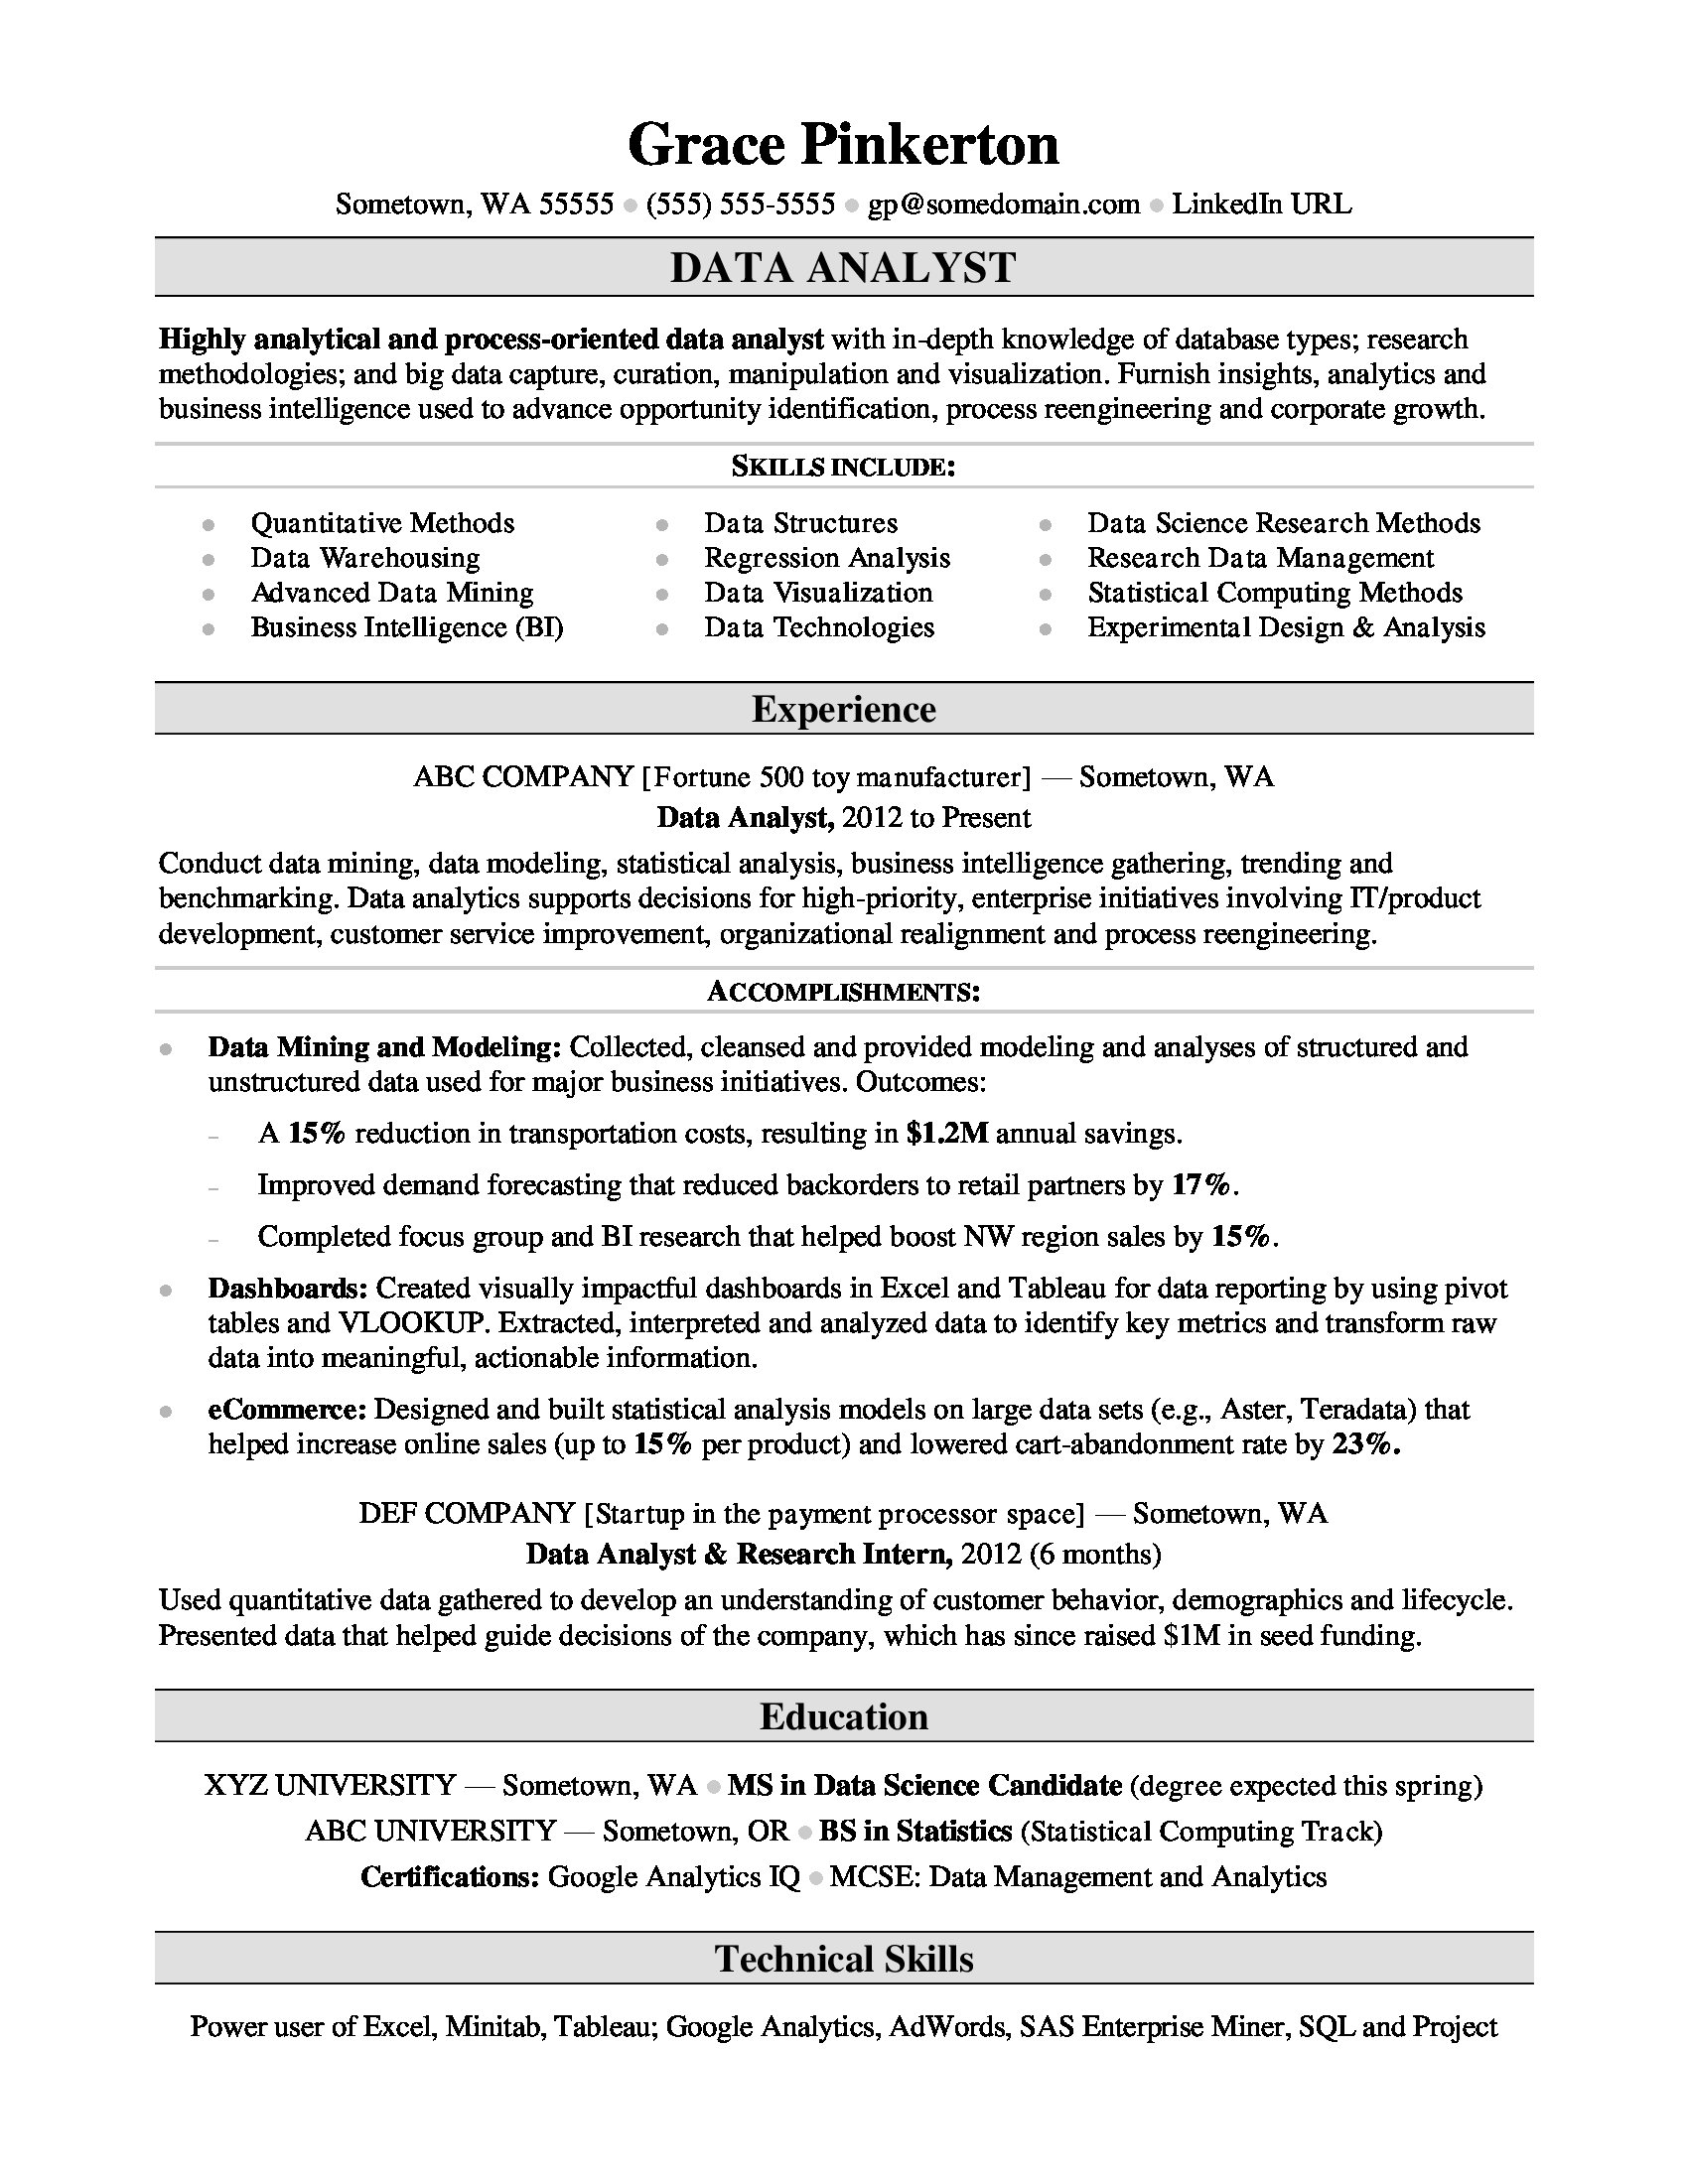 data analyst resume sample monster research executive dataanalyst cassie kozyrkov Resume Research Executive Resume